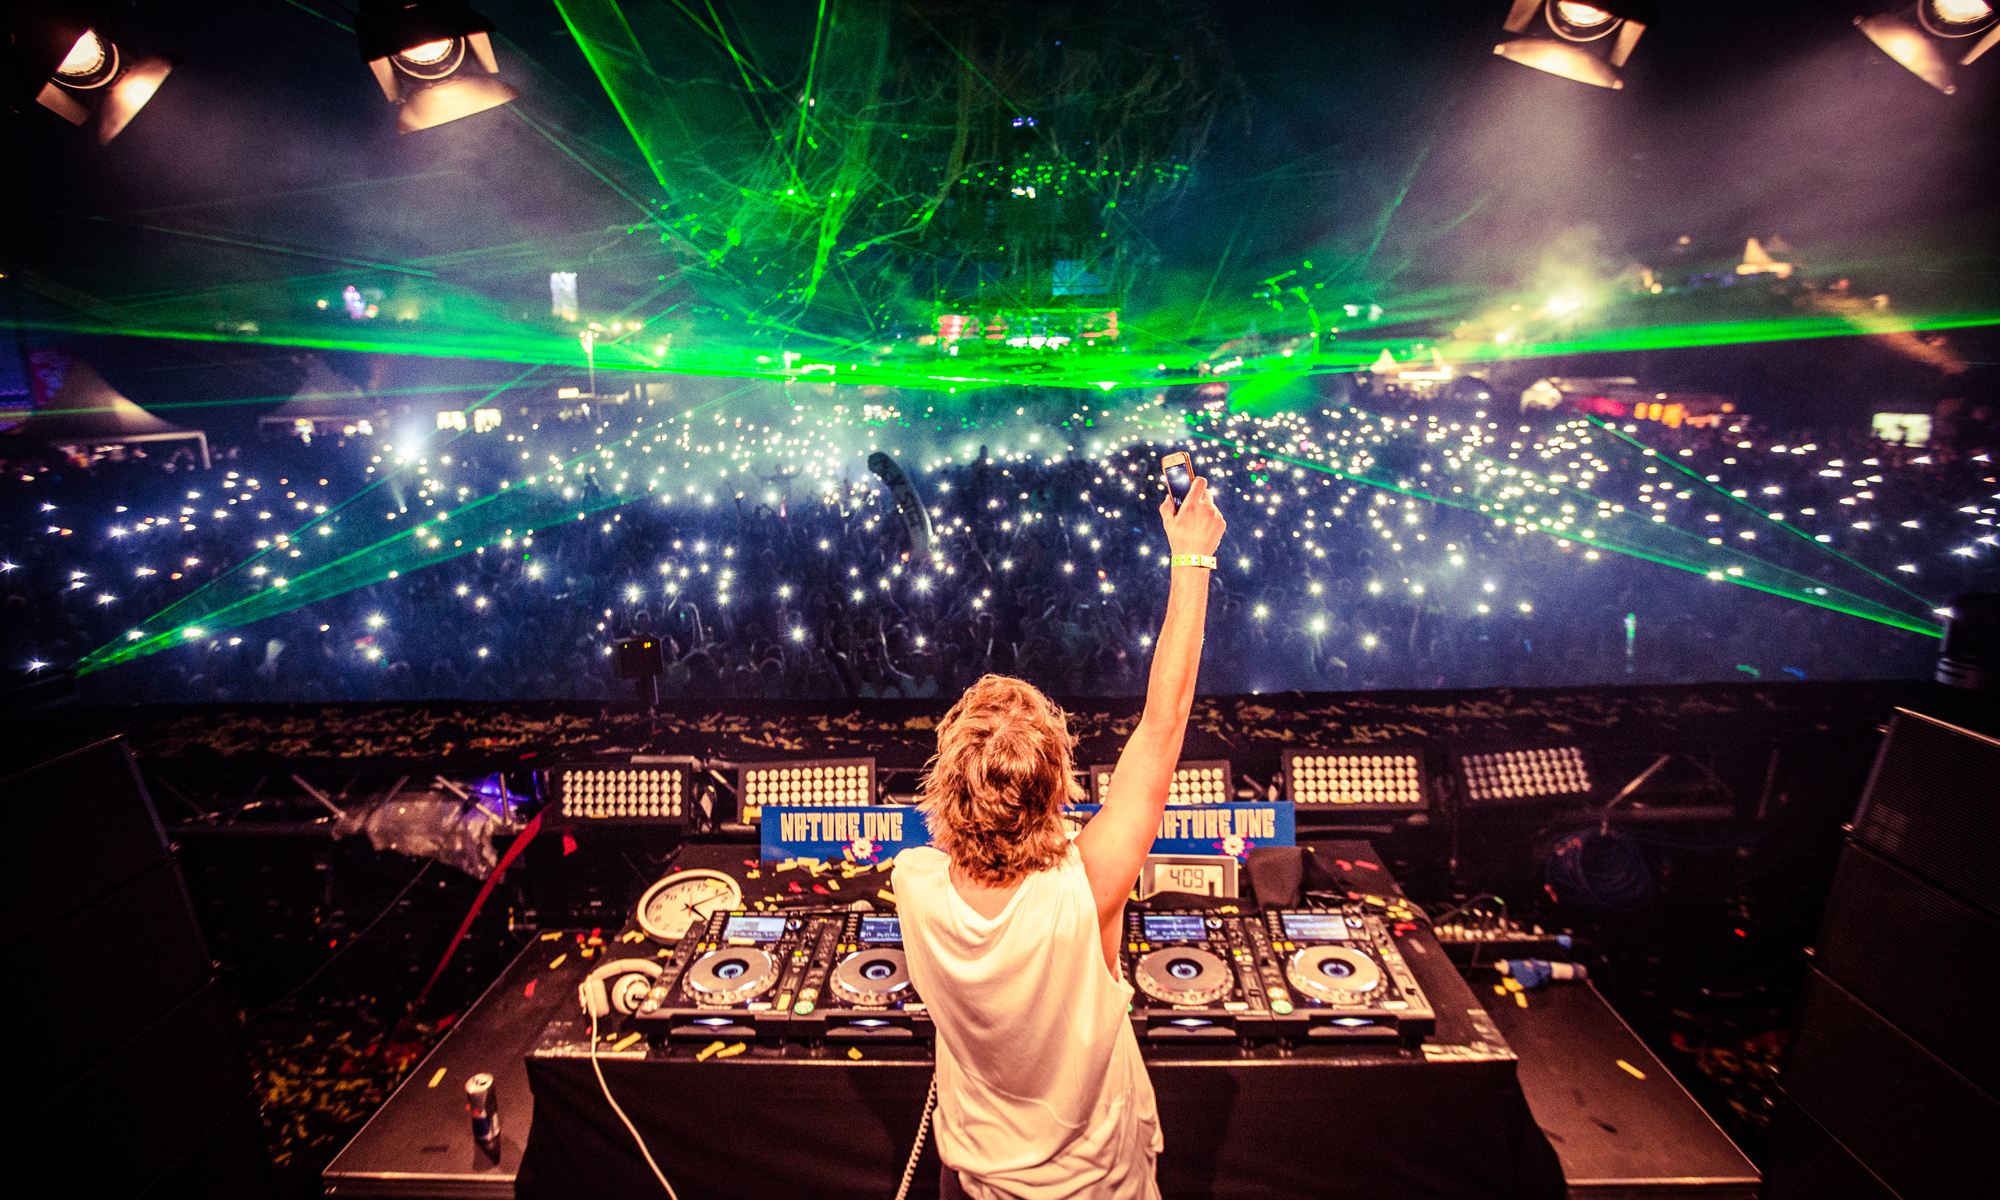 Commercial Advertisement Ad Photoshop Photography Music Concert Festival Tour Backstage Stage - by Julian Erksmeyer 2015 Danny Avila Tourlife Tour